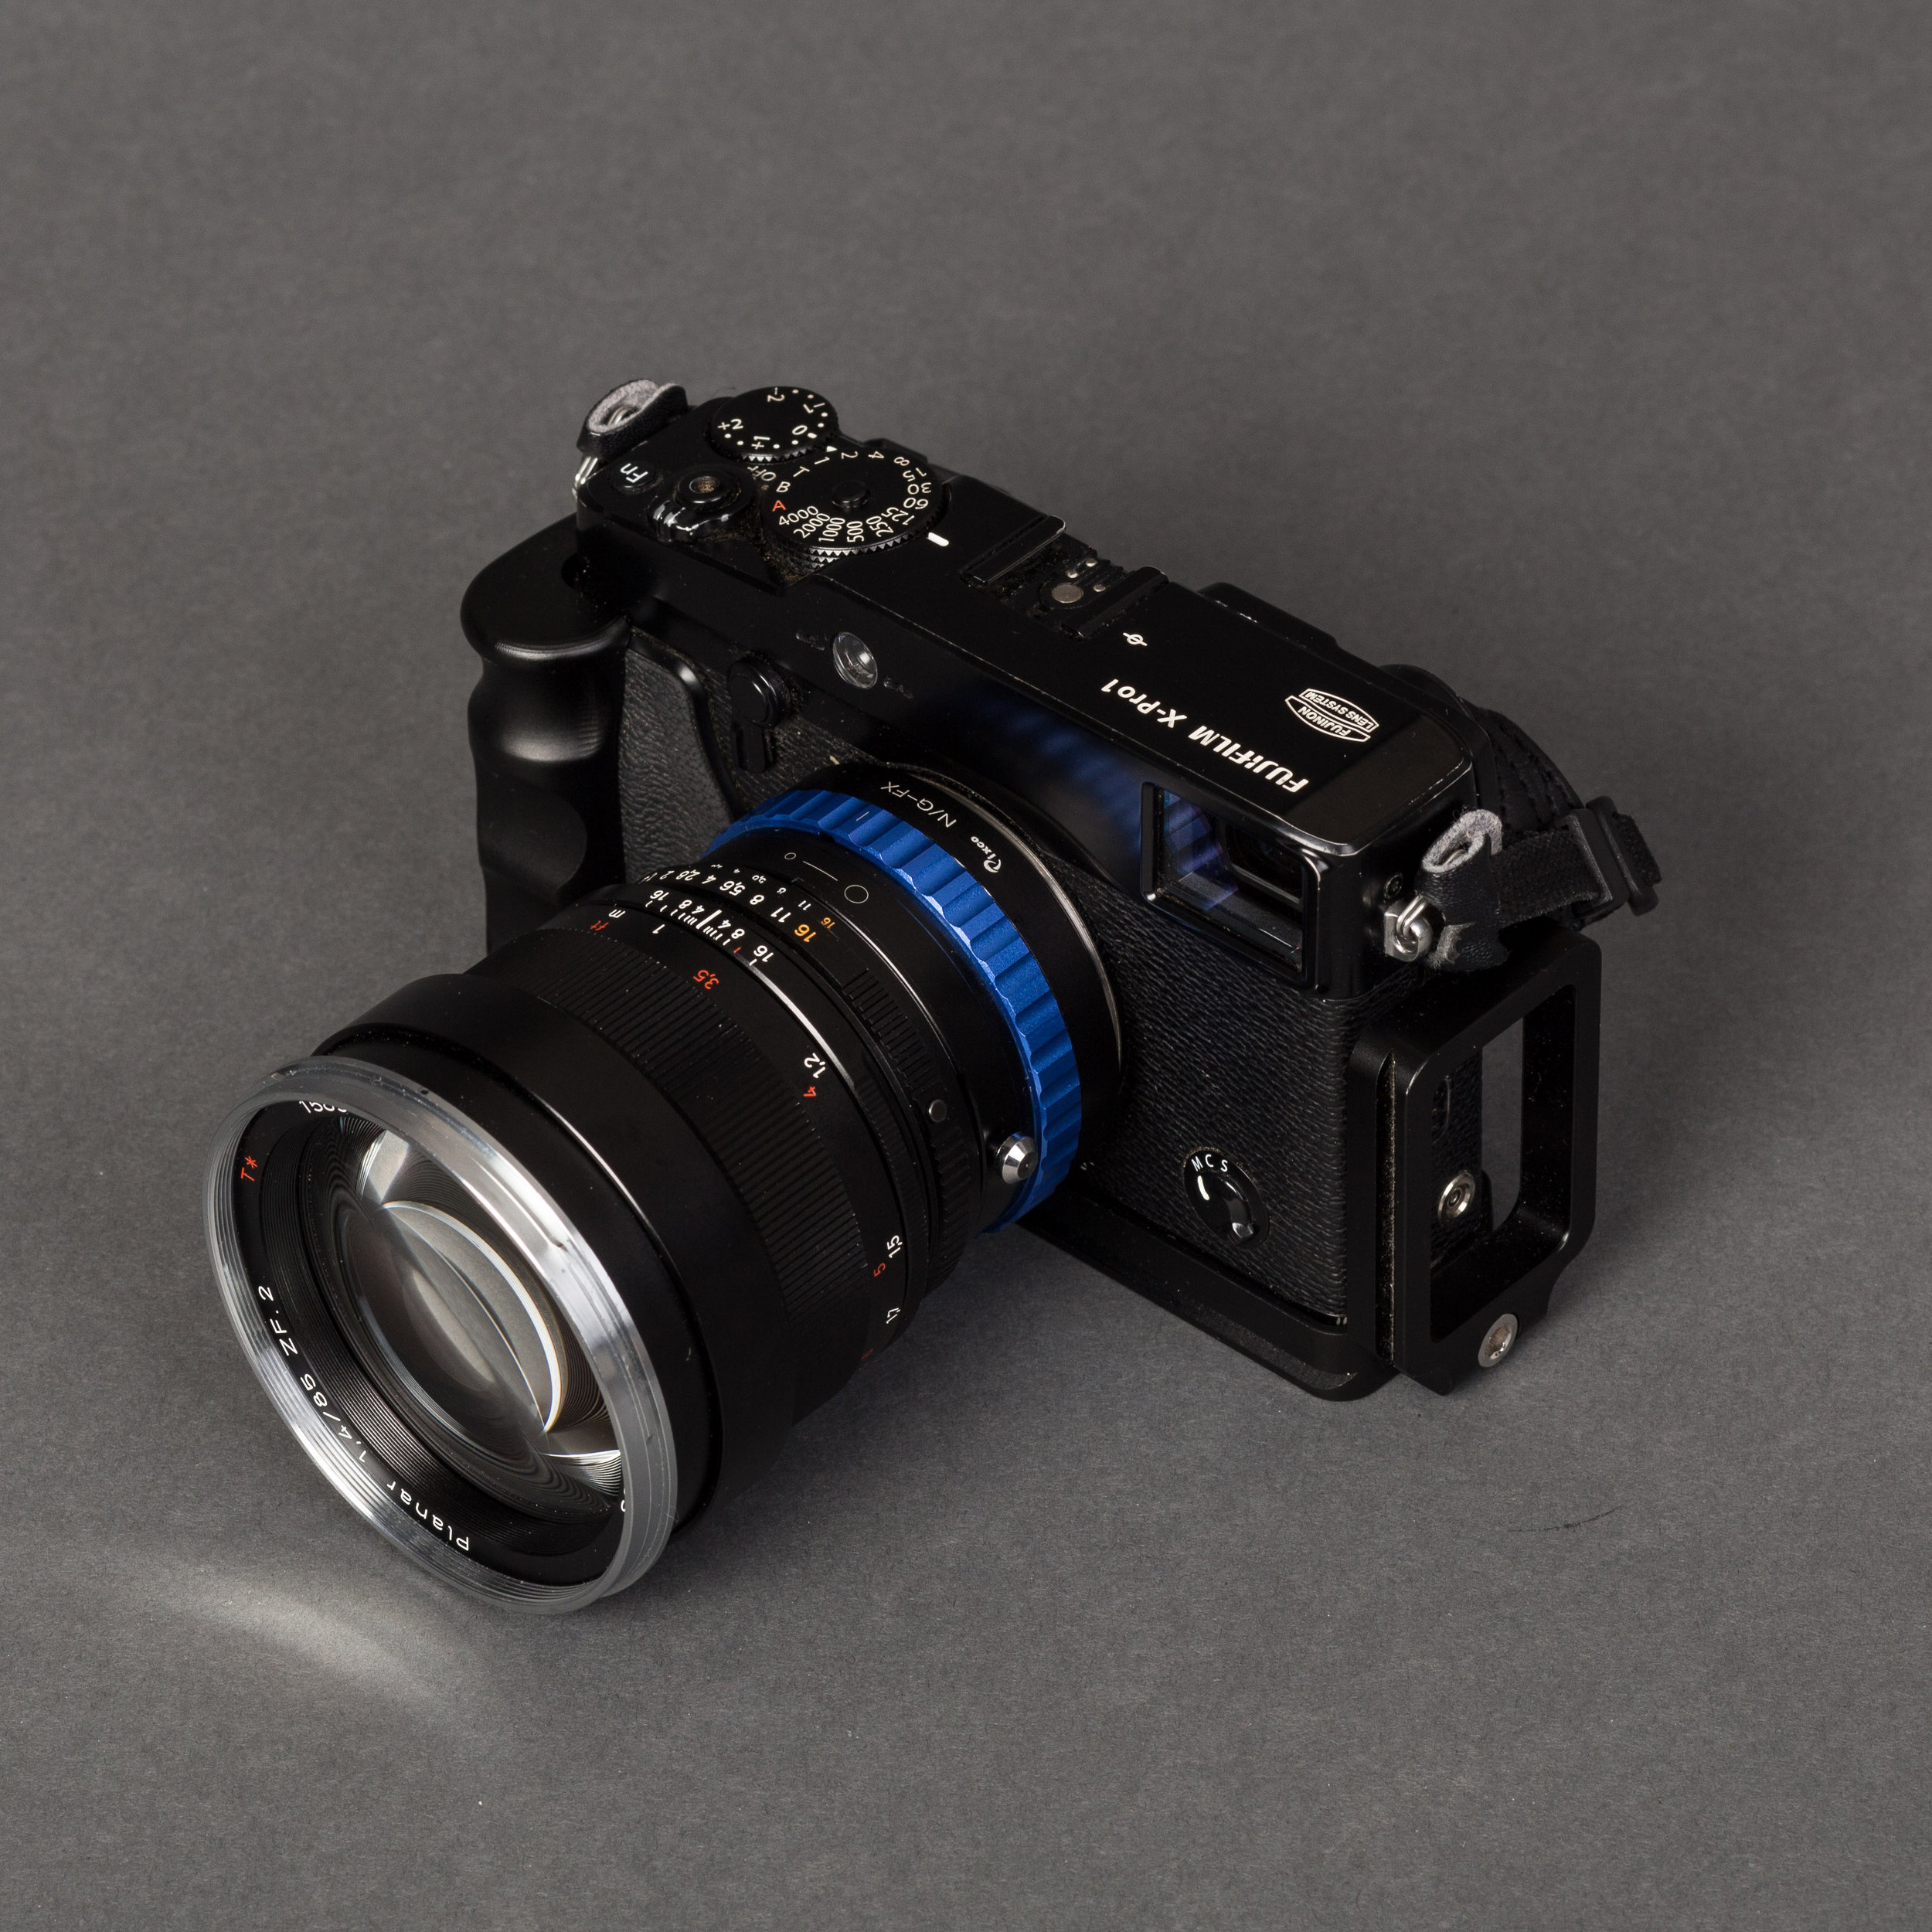 X-Pro 1 with the 85mm and and an Arca Swiss L bracket grip.